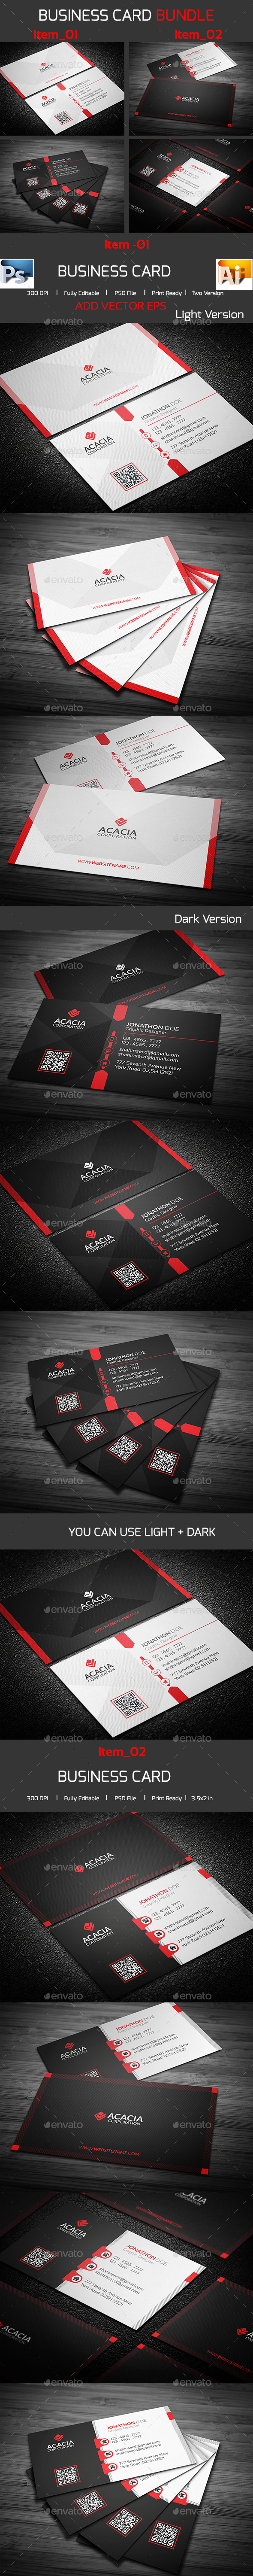 Bundle- 2 in 1 Business Card_06 - Corporate Business Cards